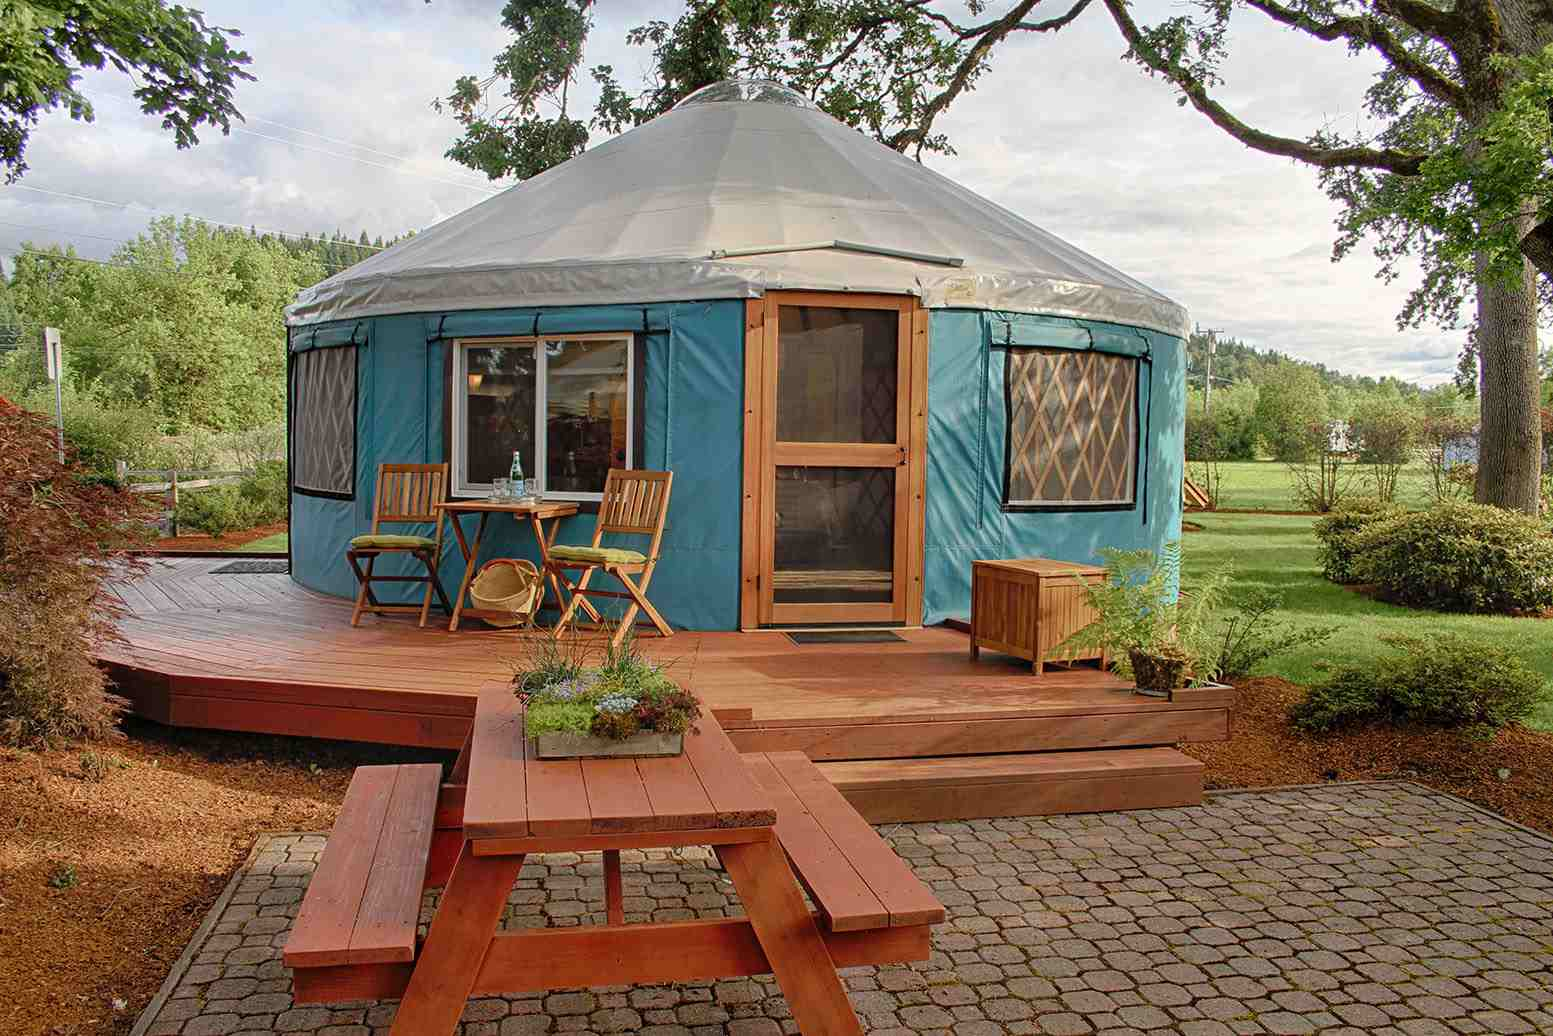 5 Yurt Kits For Modern Nomads Try the raven yurt configurator now and see how easy it is to build your very own. 5 yurt kits for modern nomads